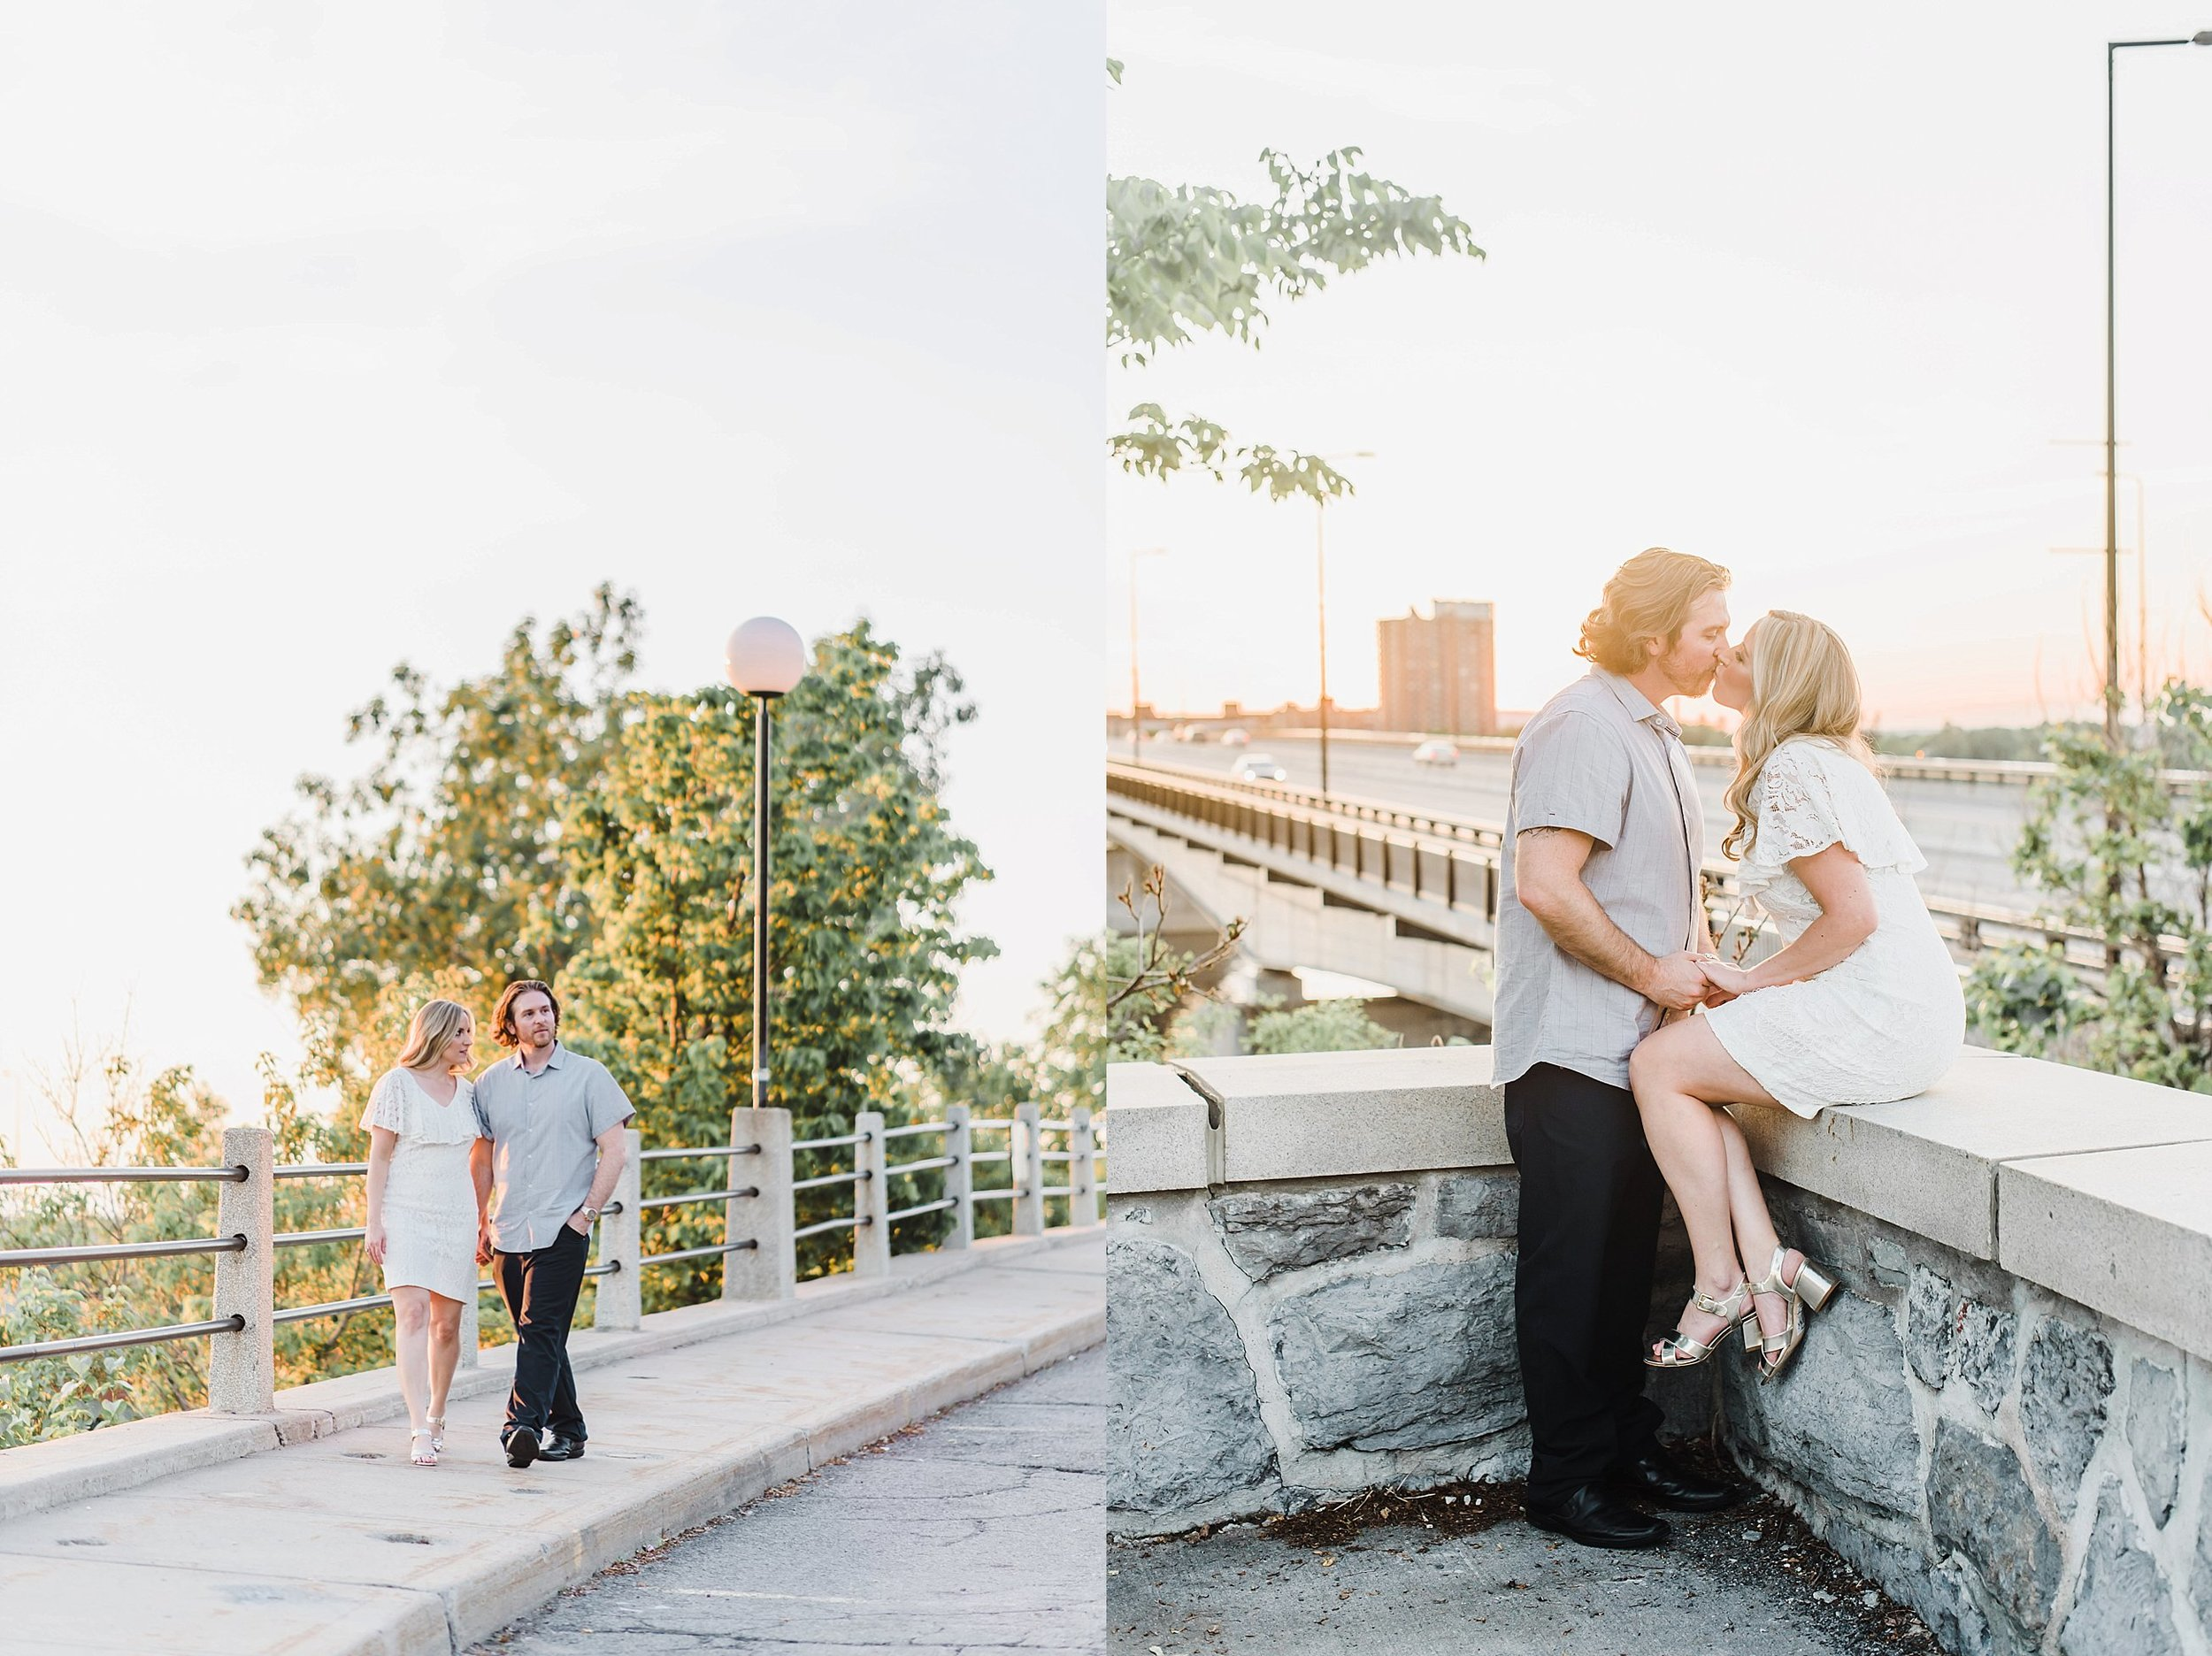 light airy indie fine art ottawa wedding photographer | Ali and Batoul Photography_0773.jpg